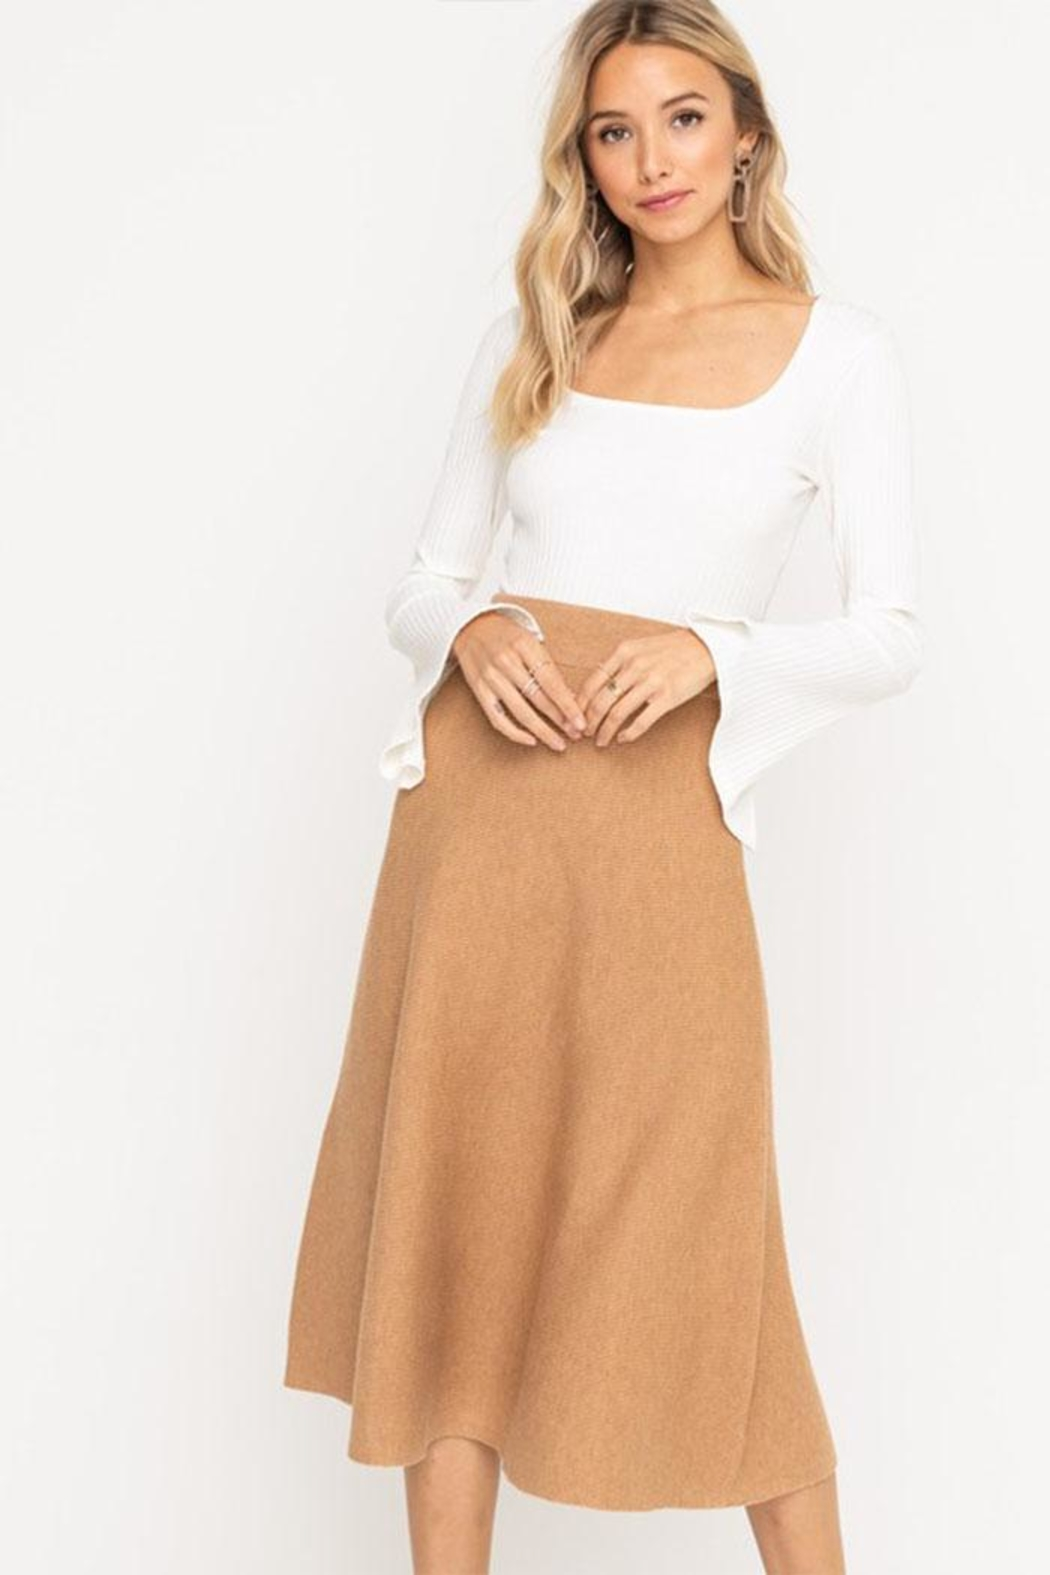 Lush Knit Midi Skirt From New York By Dor L Dor Shoptiques